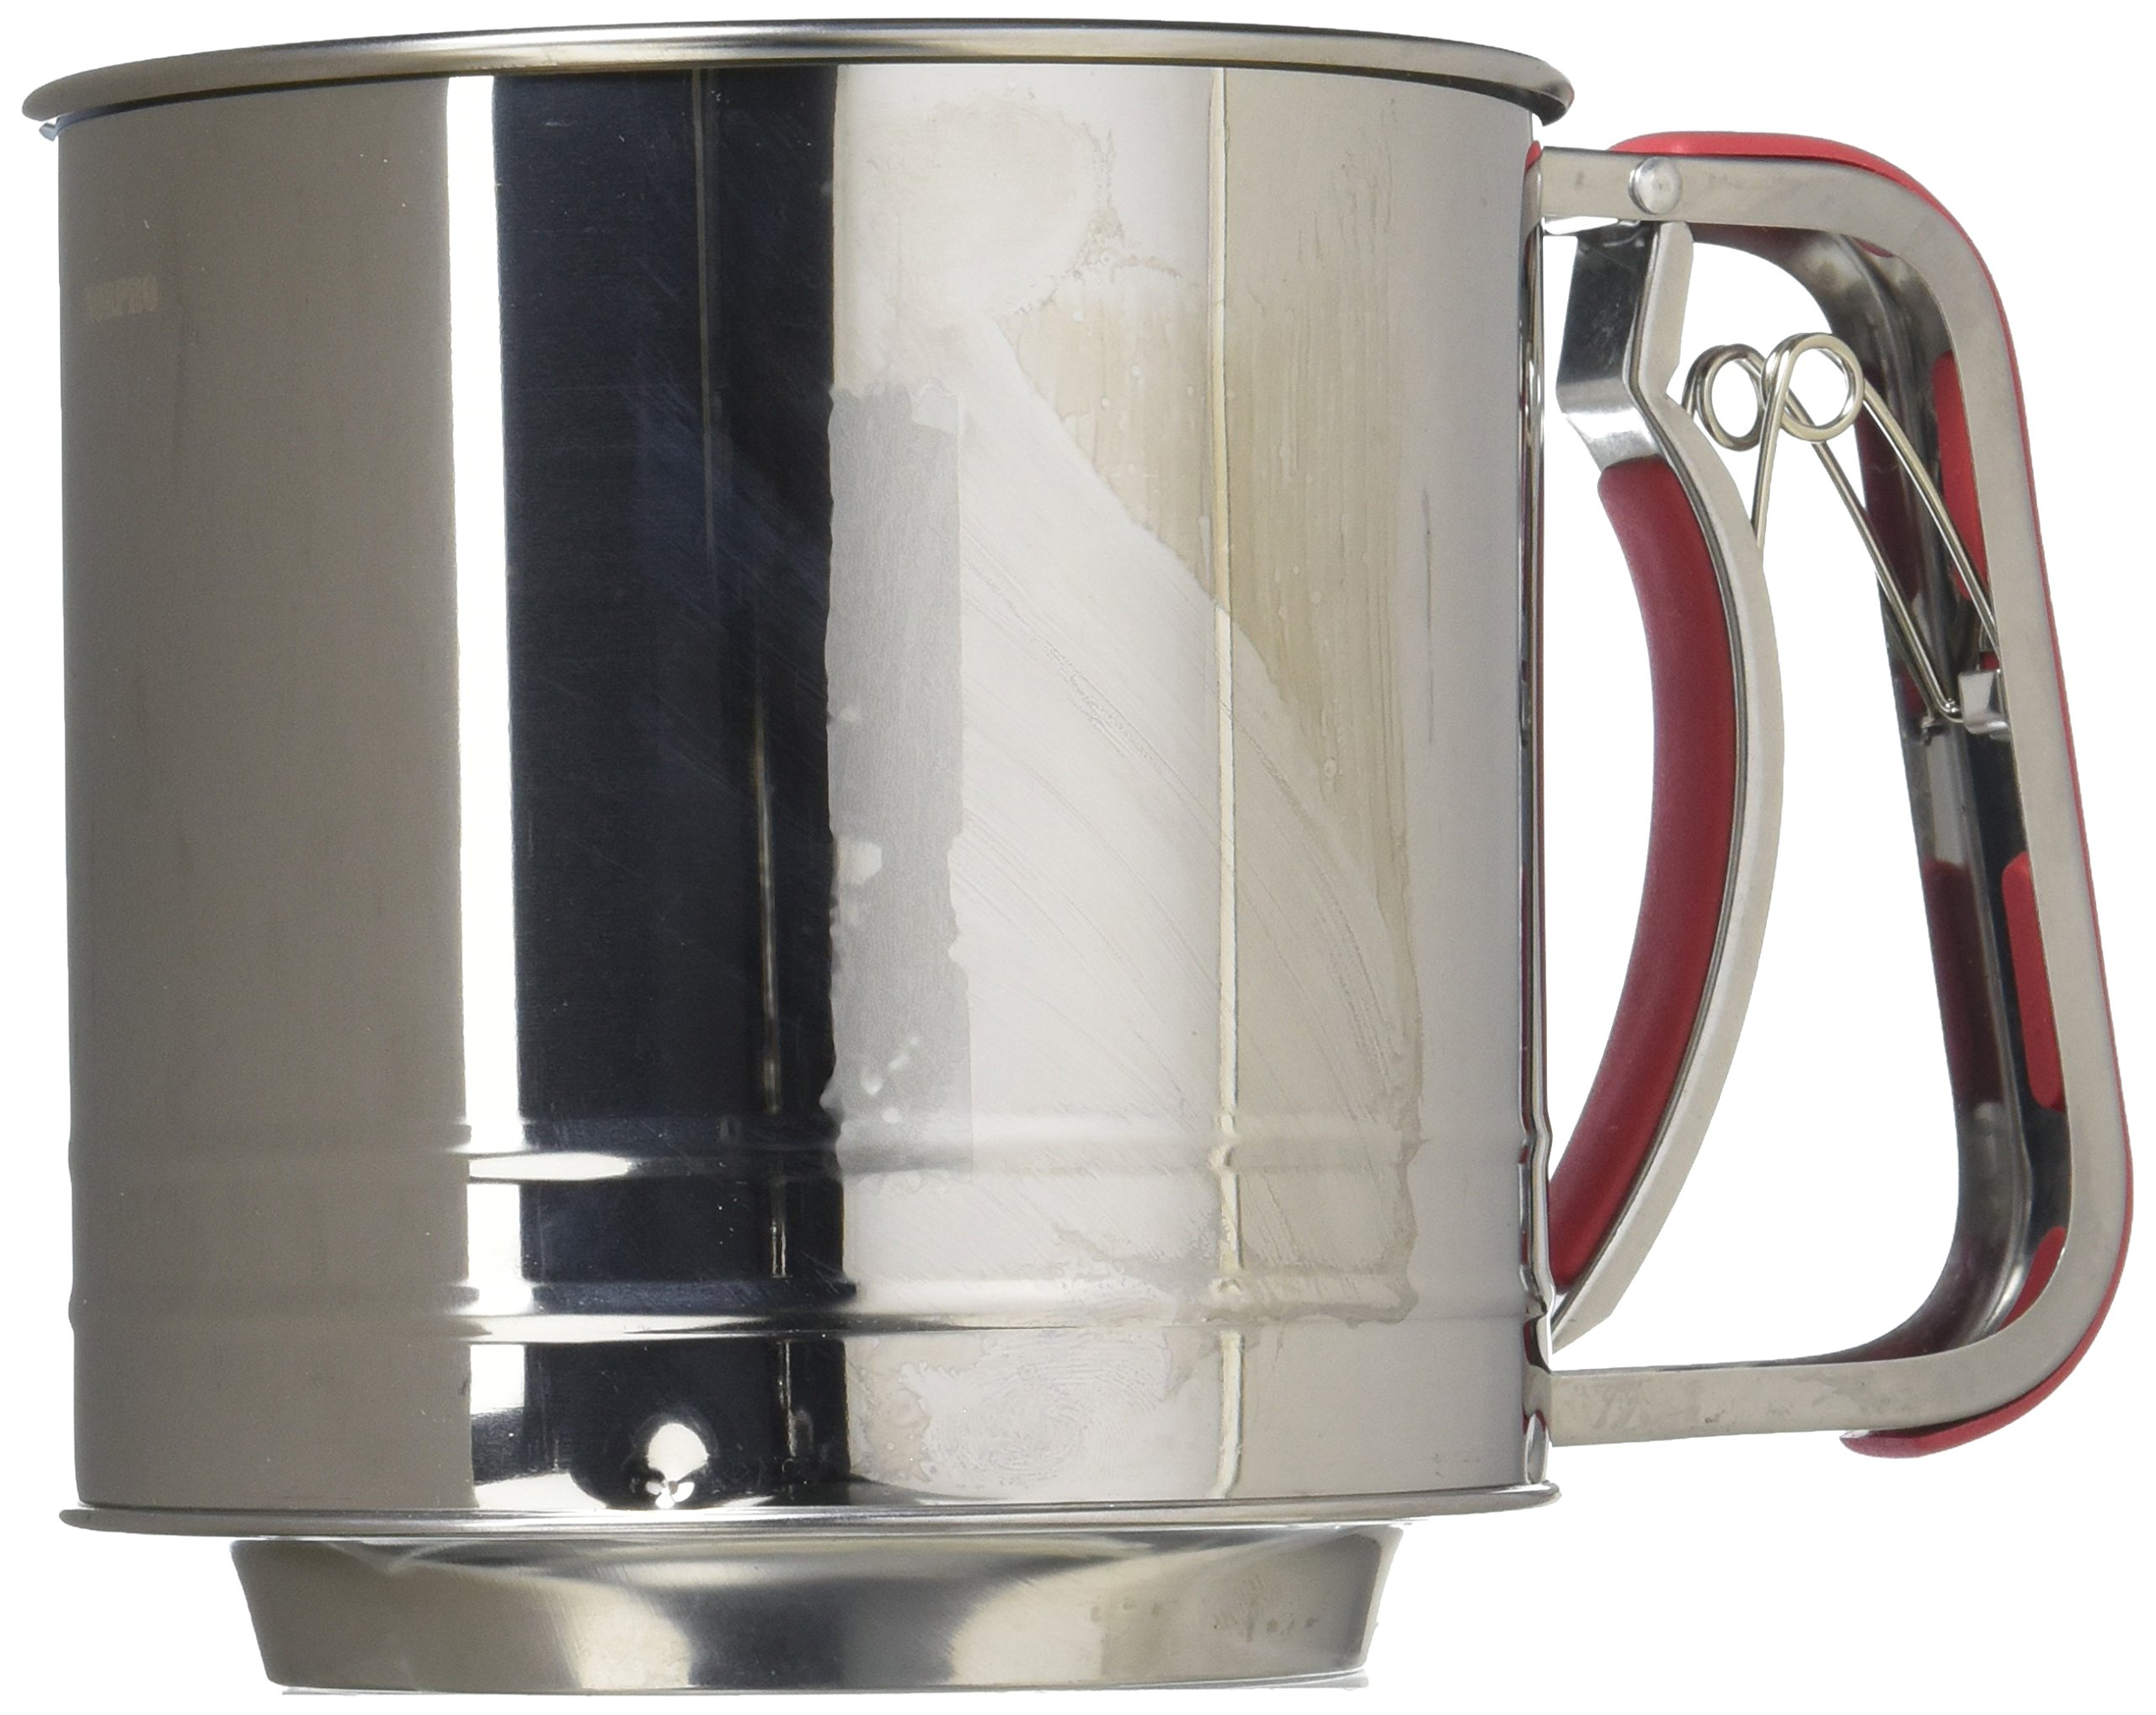 Norpro 5-Cup Stainless Steel Spring-Action Sifter